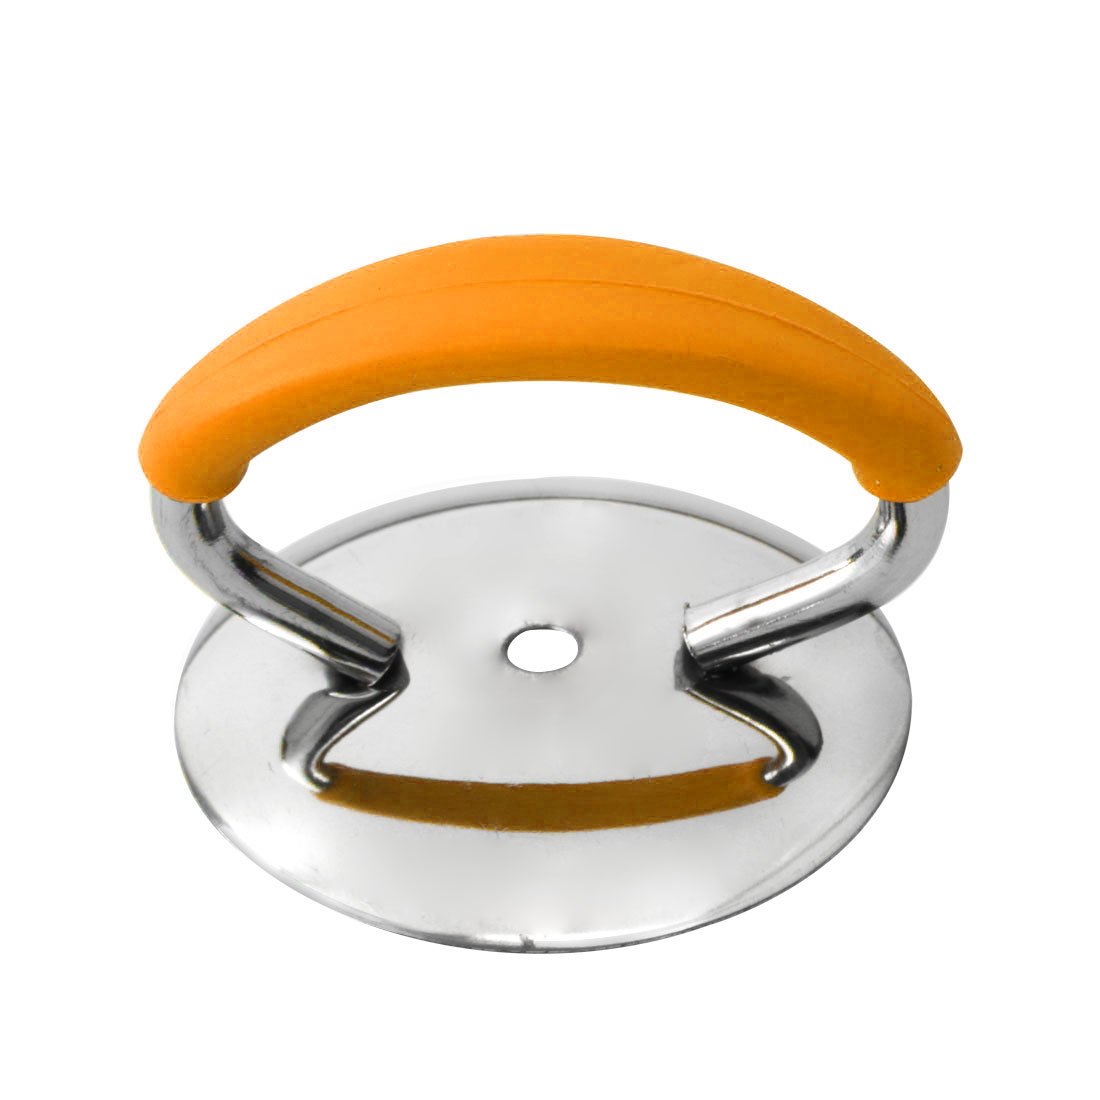 Stainless Steel Pan Pot Lid Knob Universal Cover Replacement for Kitchen Orange